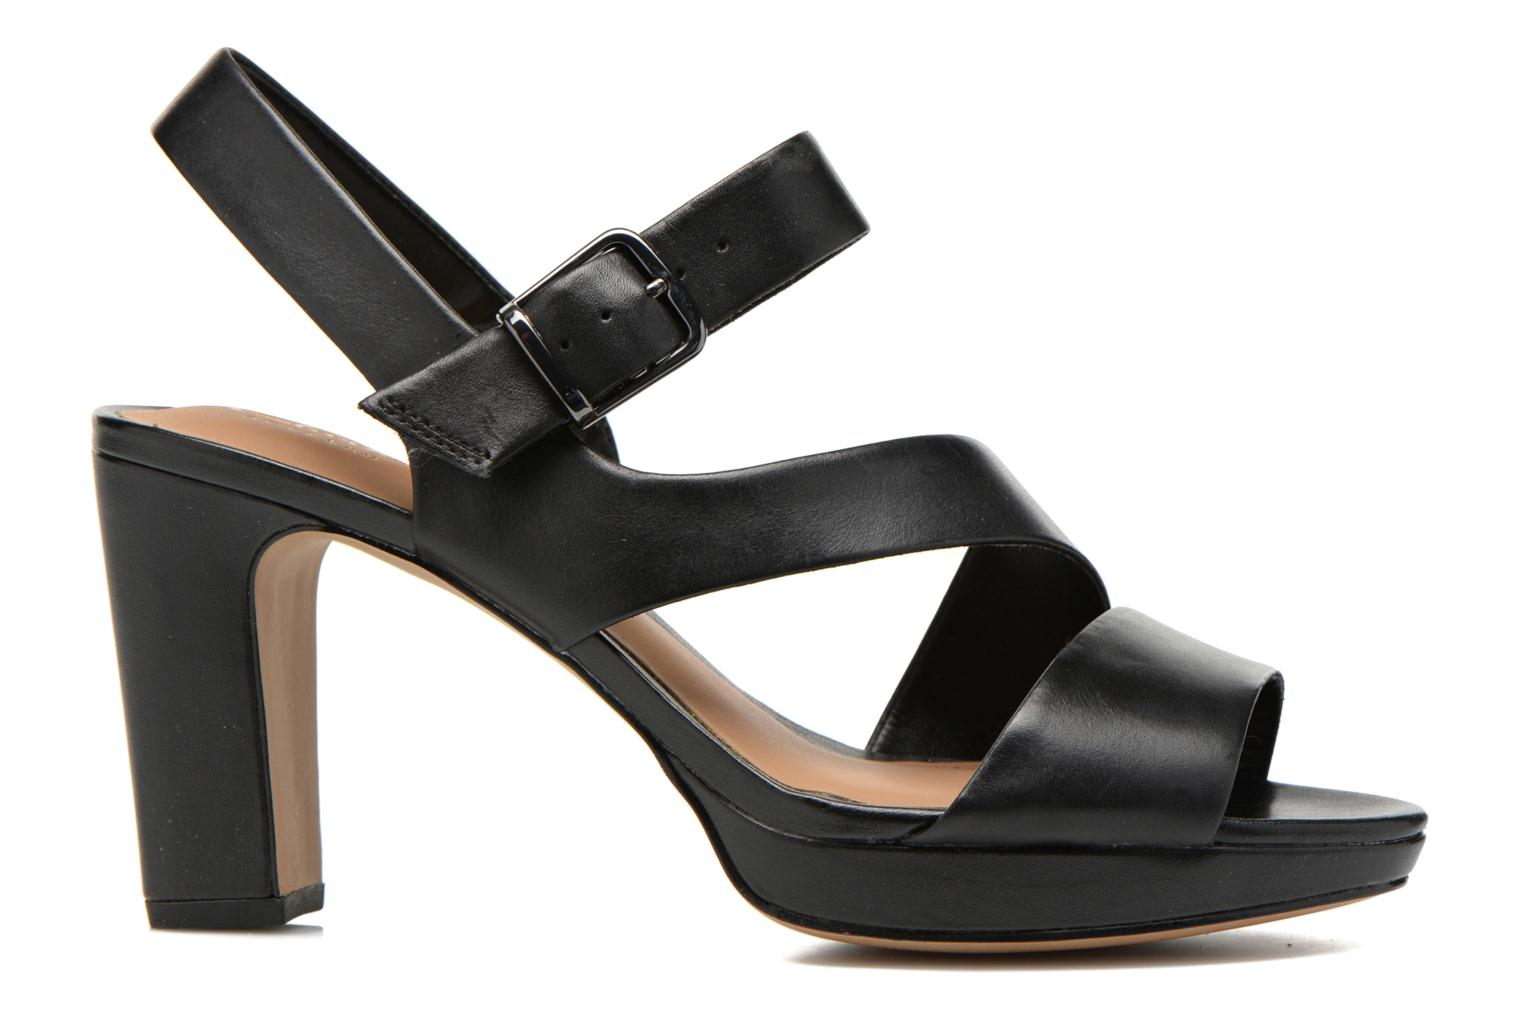 Jenness Soothe Black leather